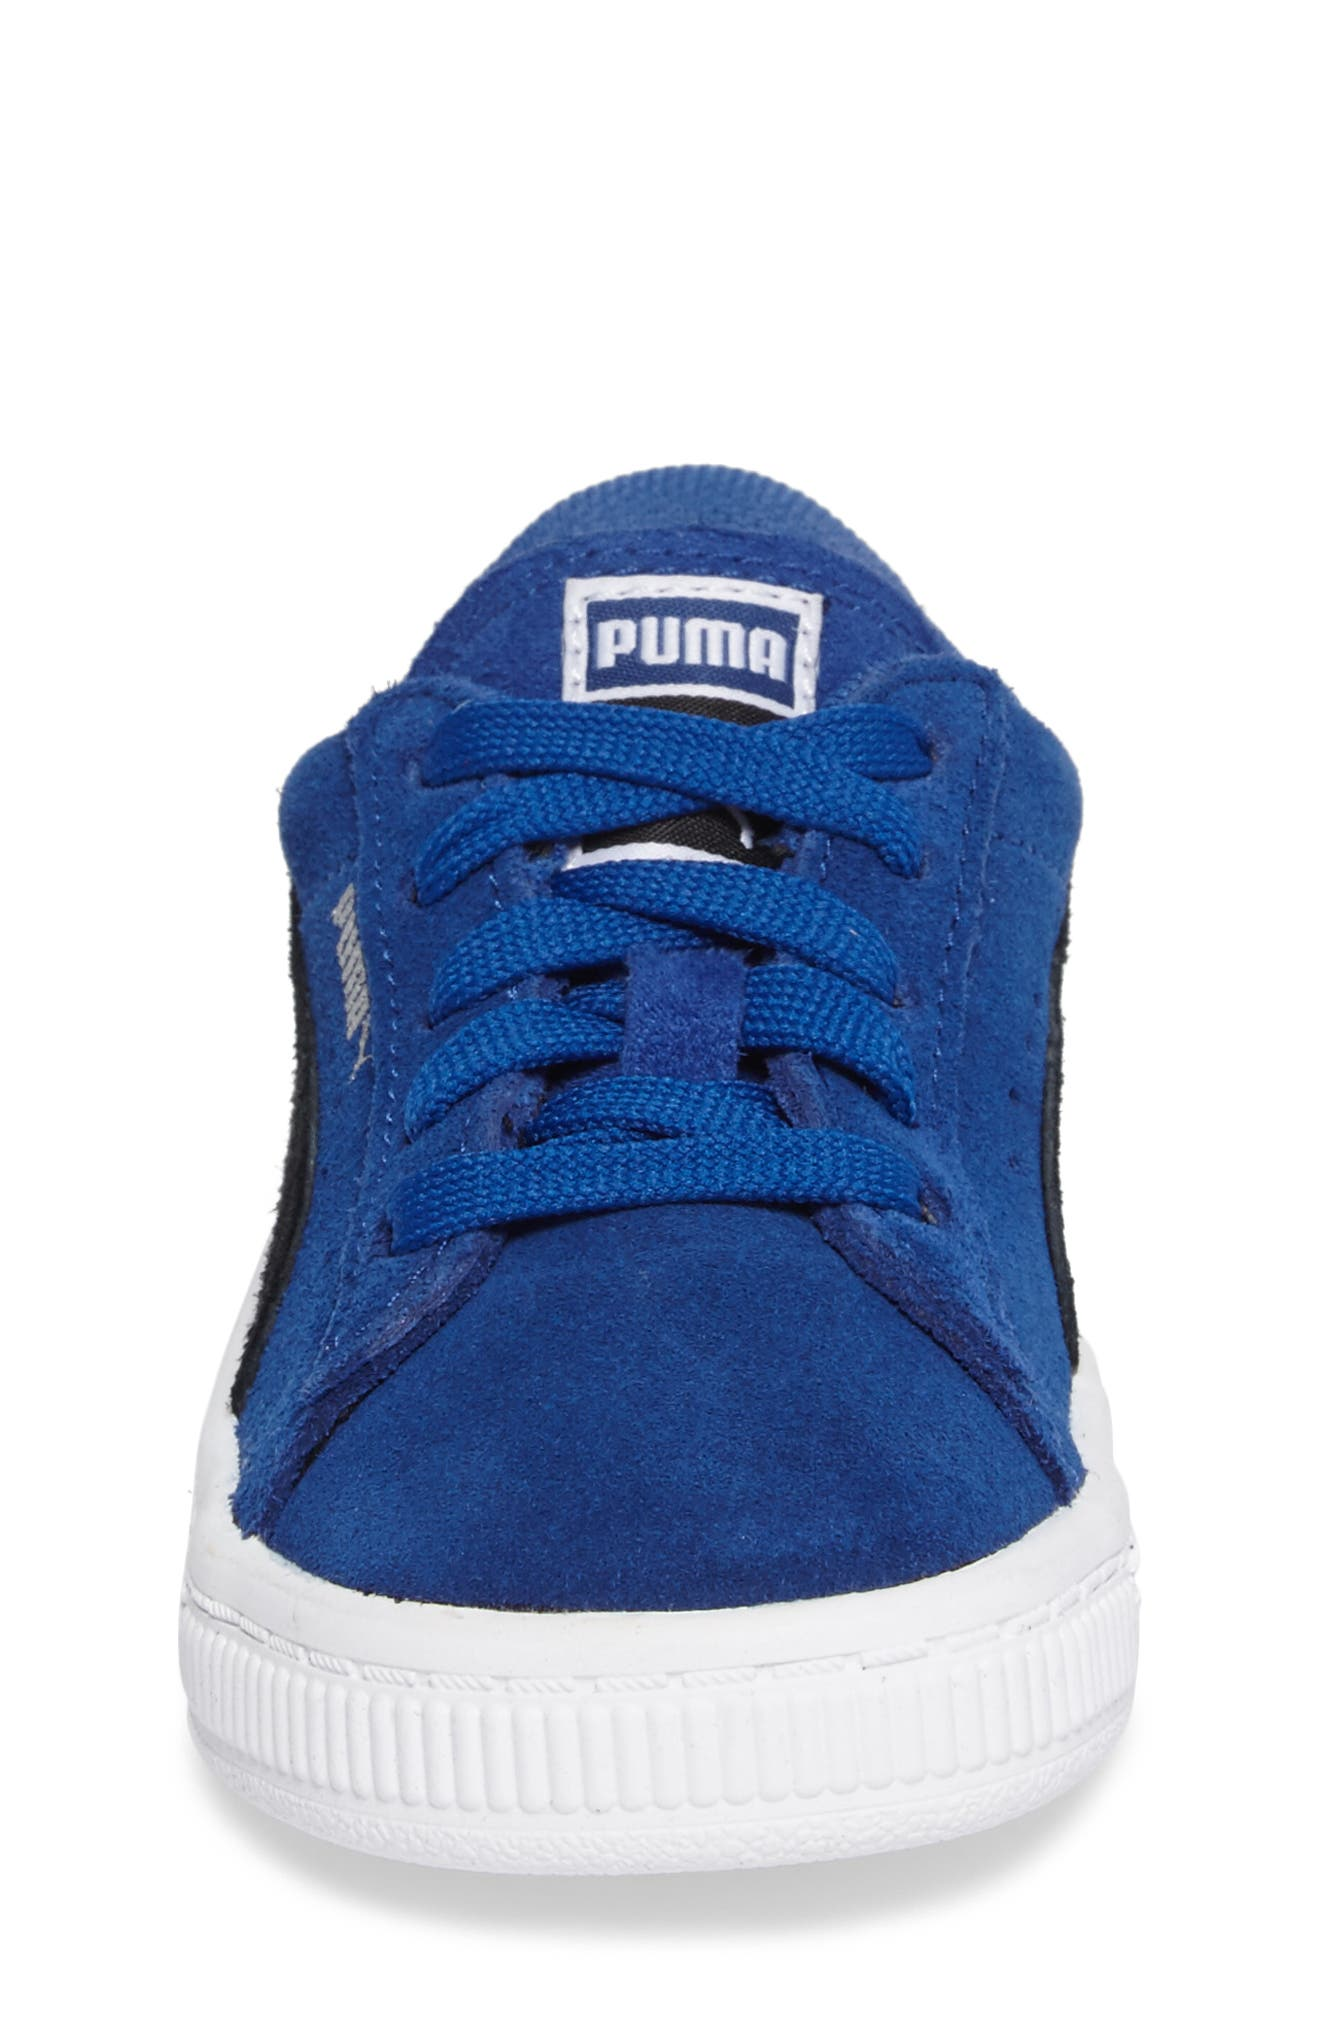 Alternate Image 4  - PUMA 'Suede' Sneaker (Baby, Walker, Toddler, Little Kid & Big Kid)